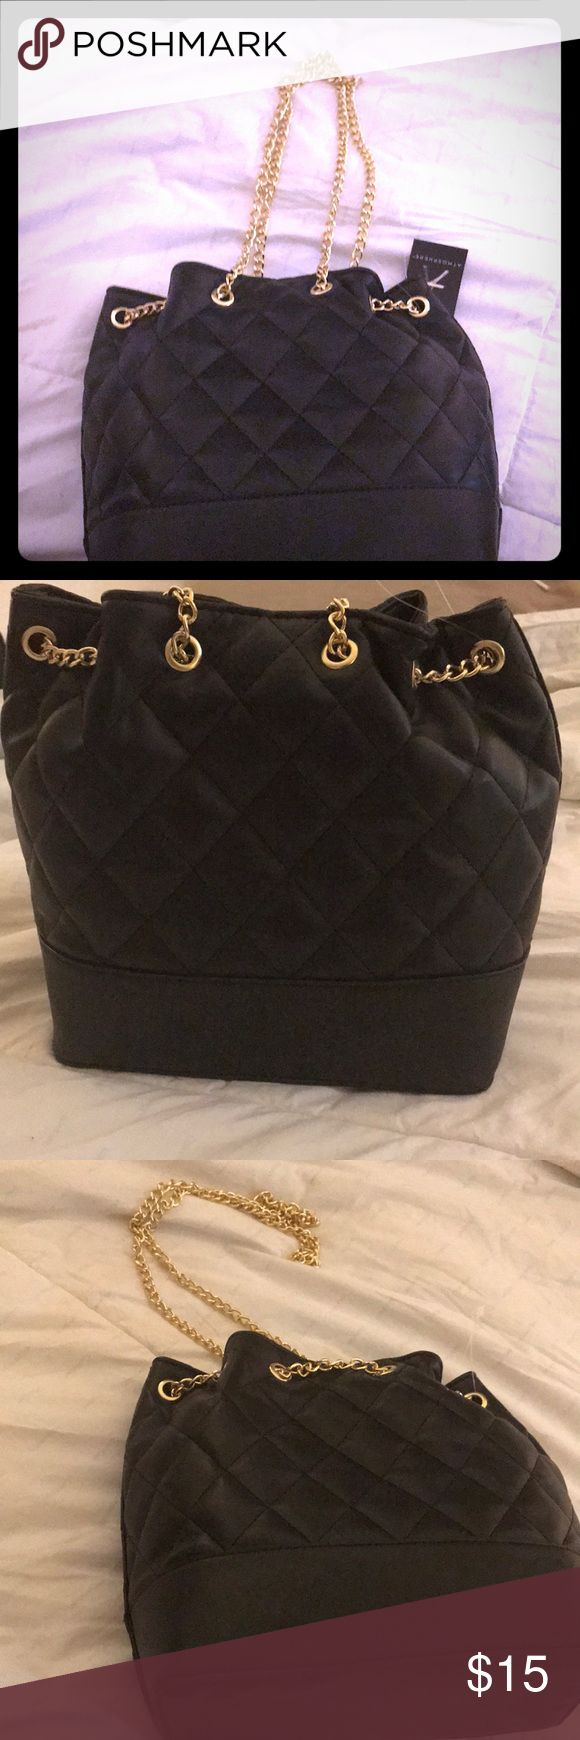 Quilted Bucket Bag Black and Gold Chanel inspired quilted bucket bag. Medium sized bag. Leather like material. New with tags. Message for more details or pictures. Can be worn on shoulder or crossbody. Bags Shoulder Bags